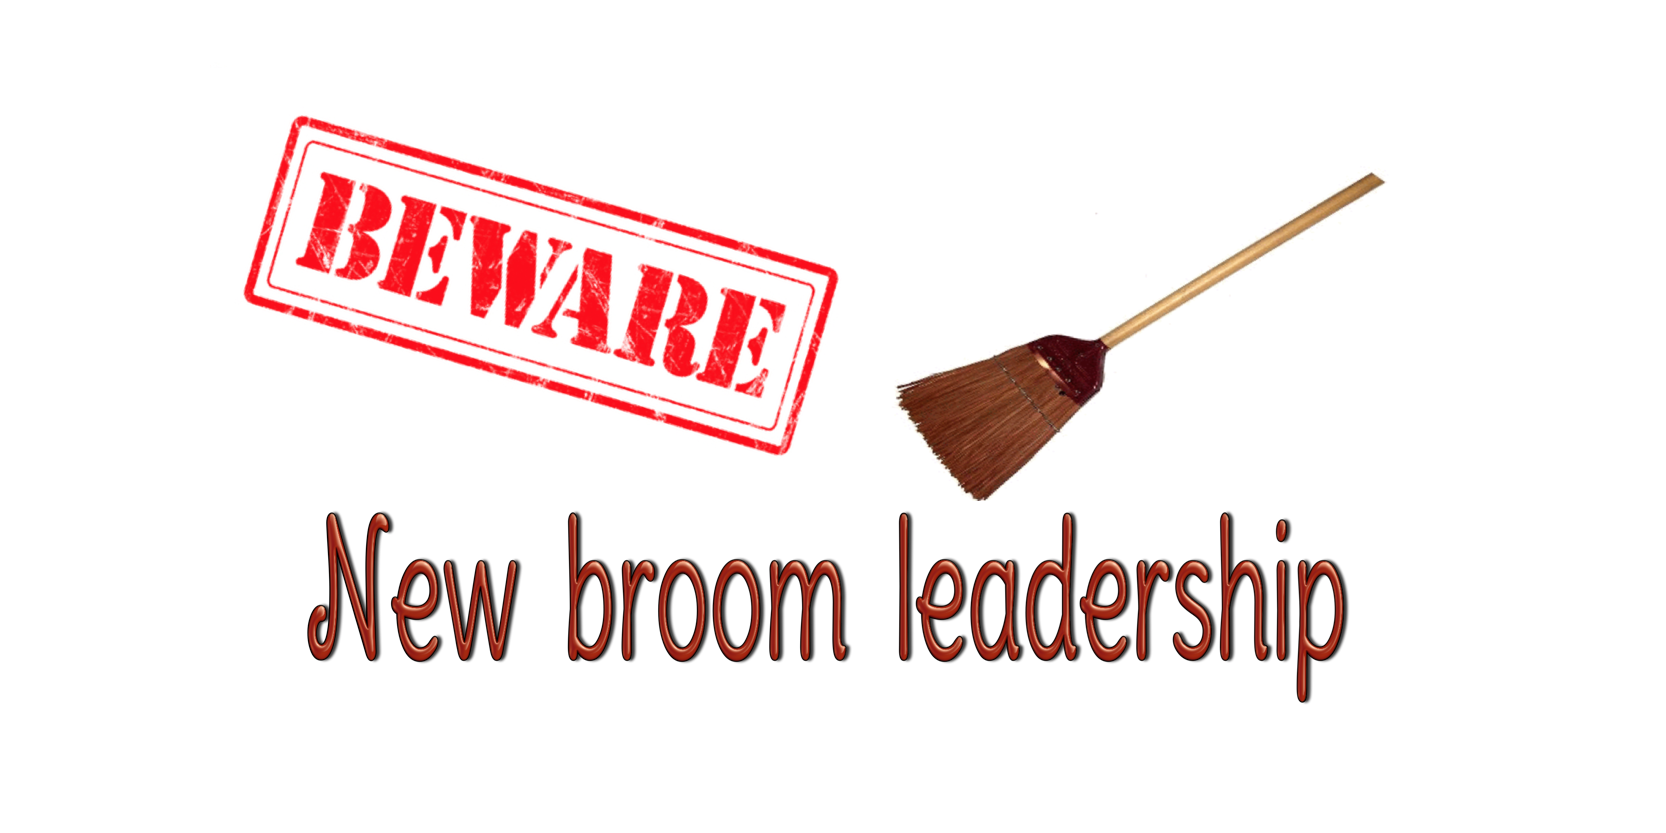 The perils of a new broom leadership style